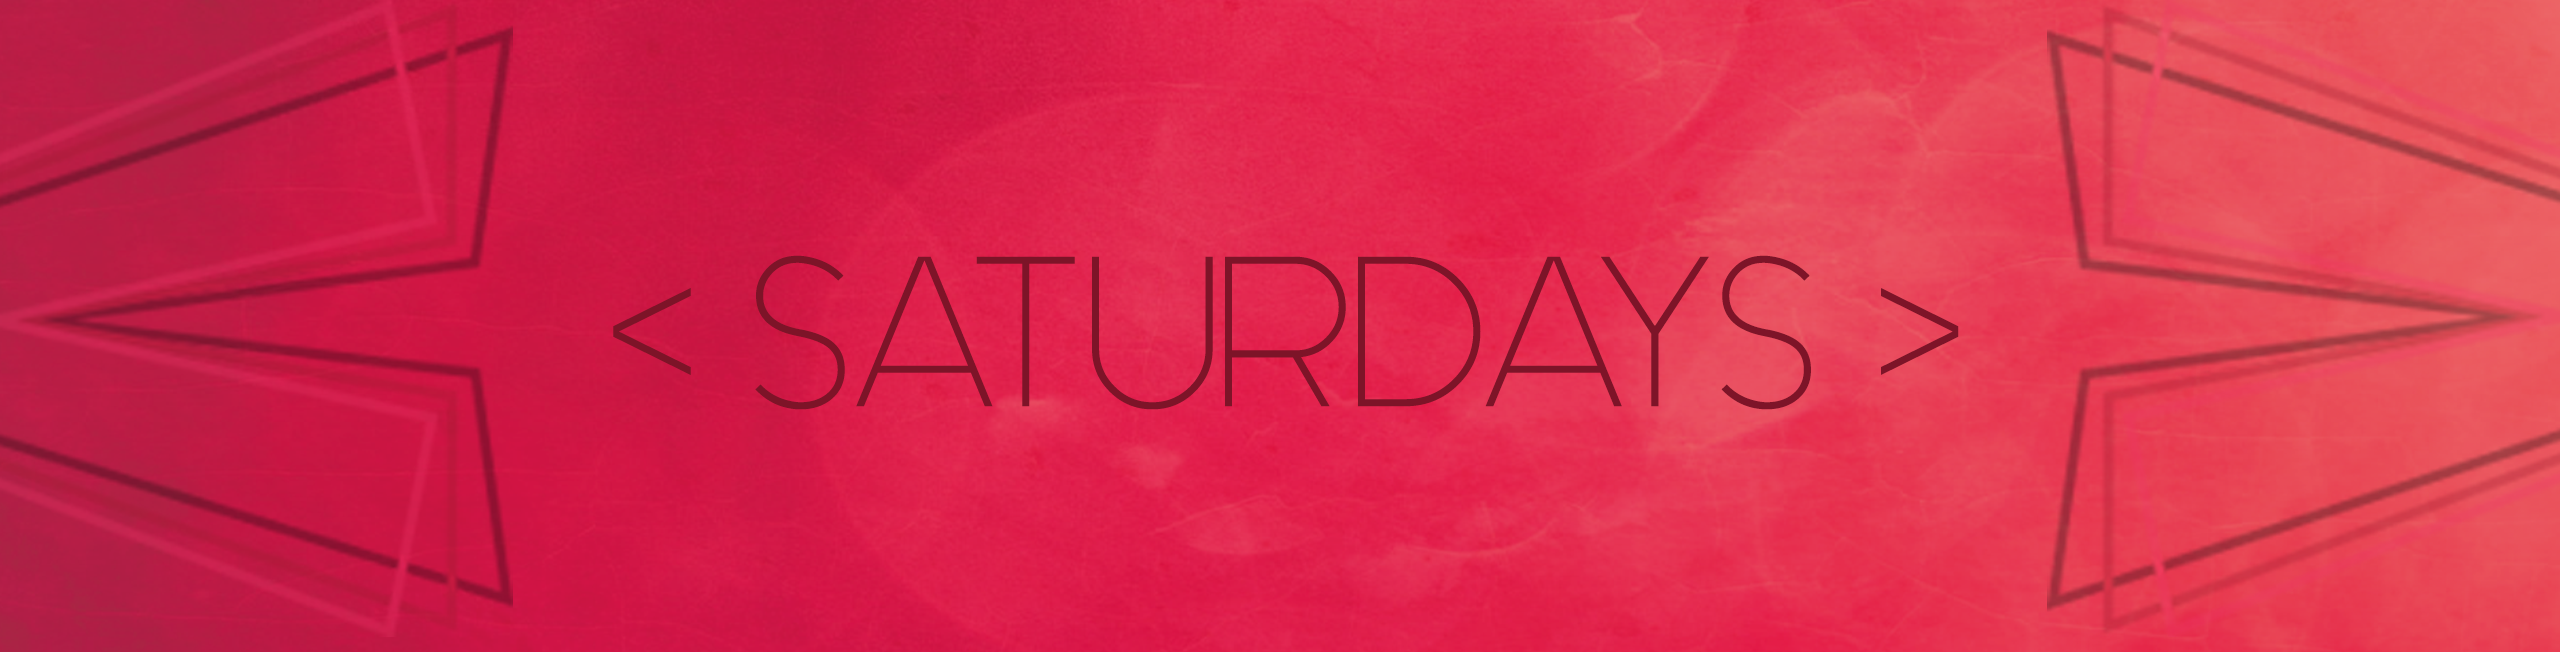 saturday-homepage